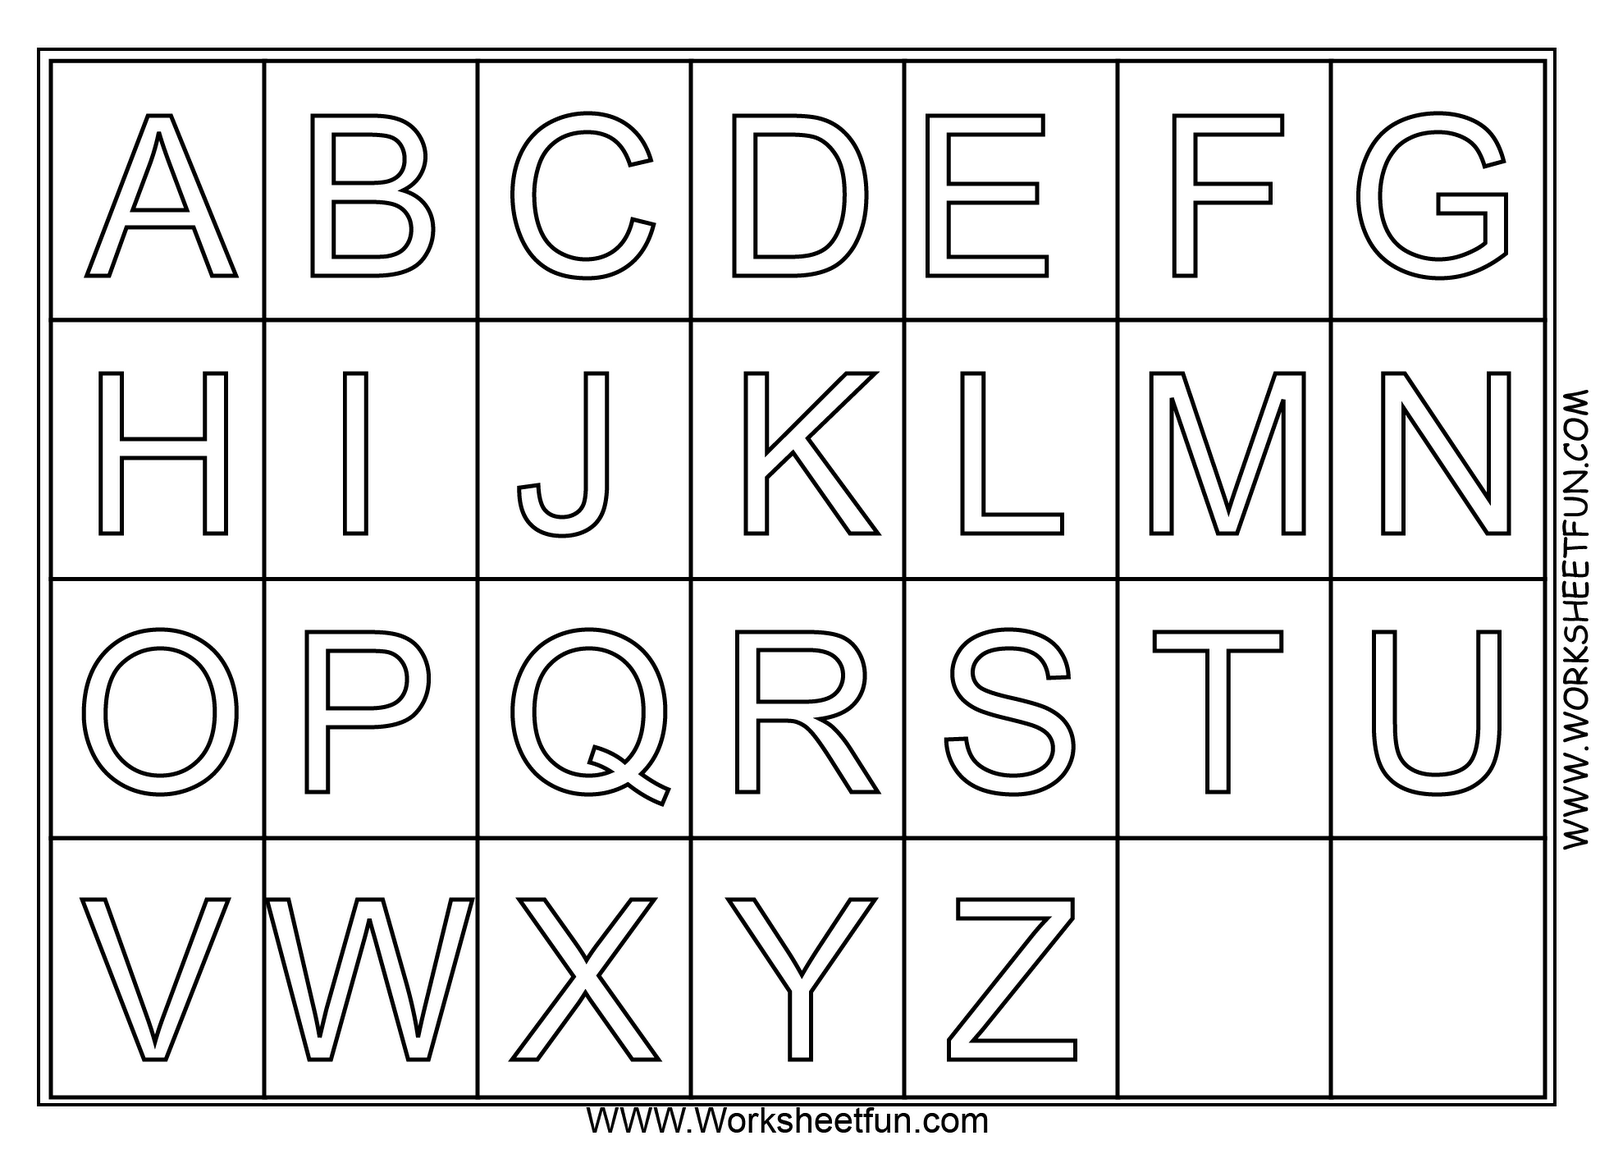 A z alphabet coloring pages download and print for free – Printable Letter Worksheets